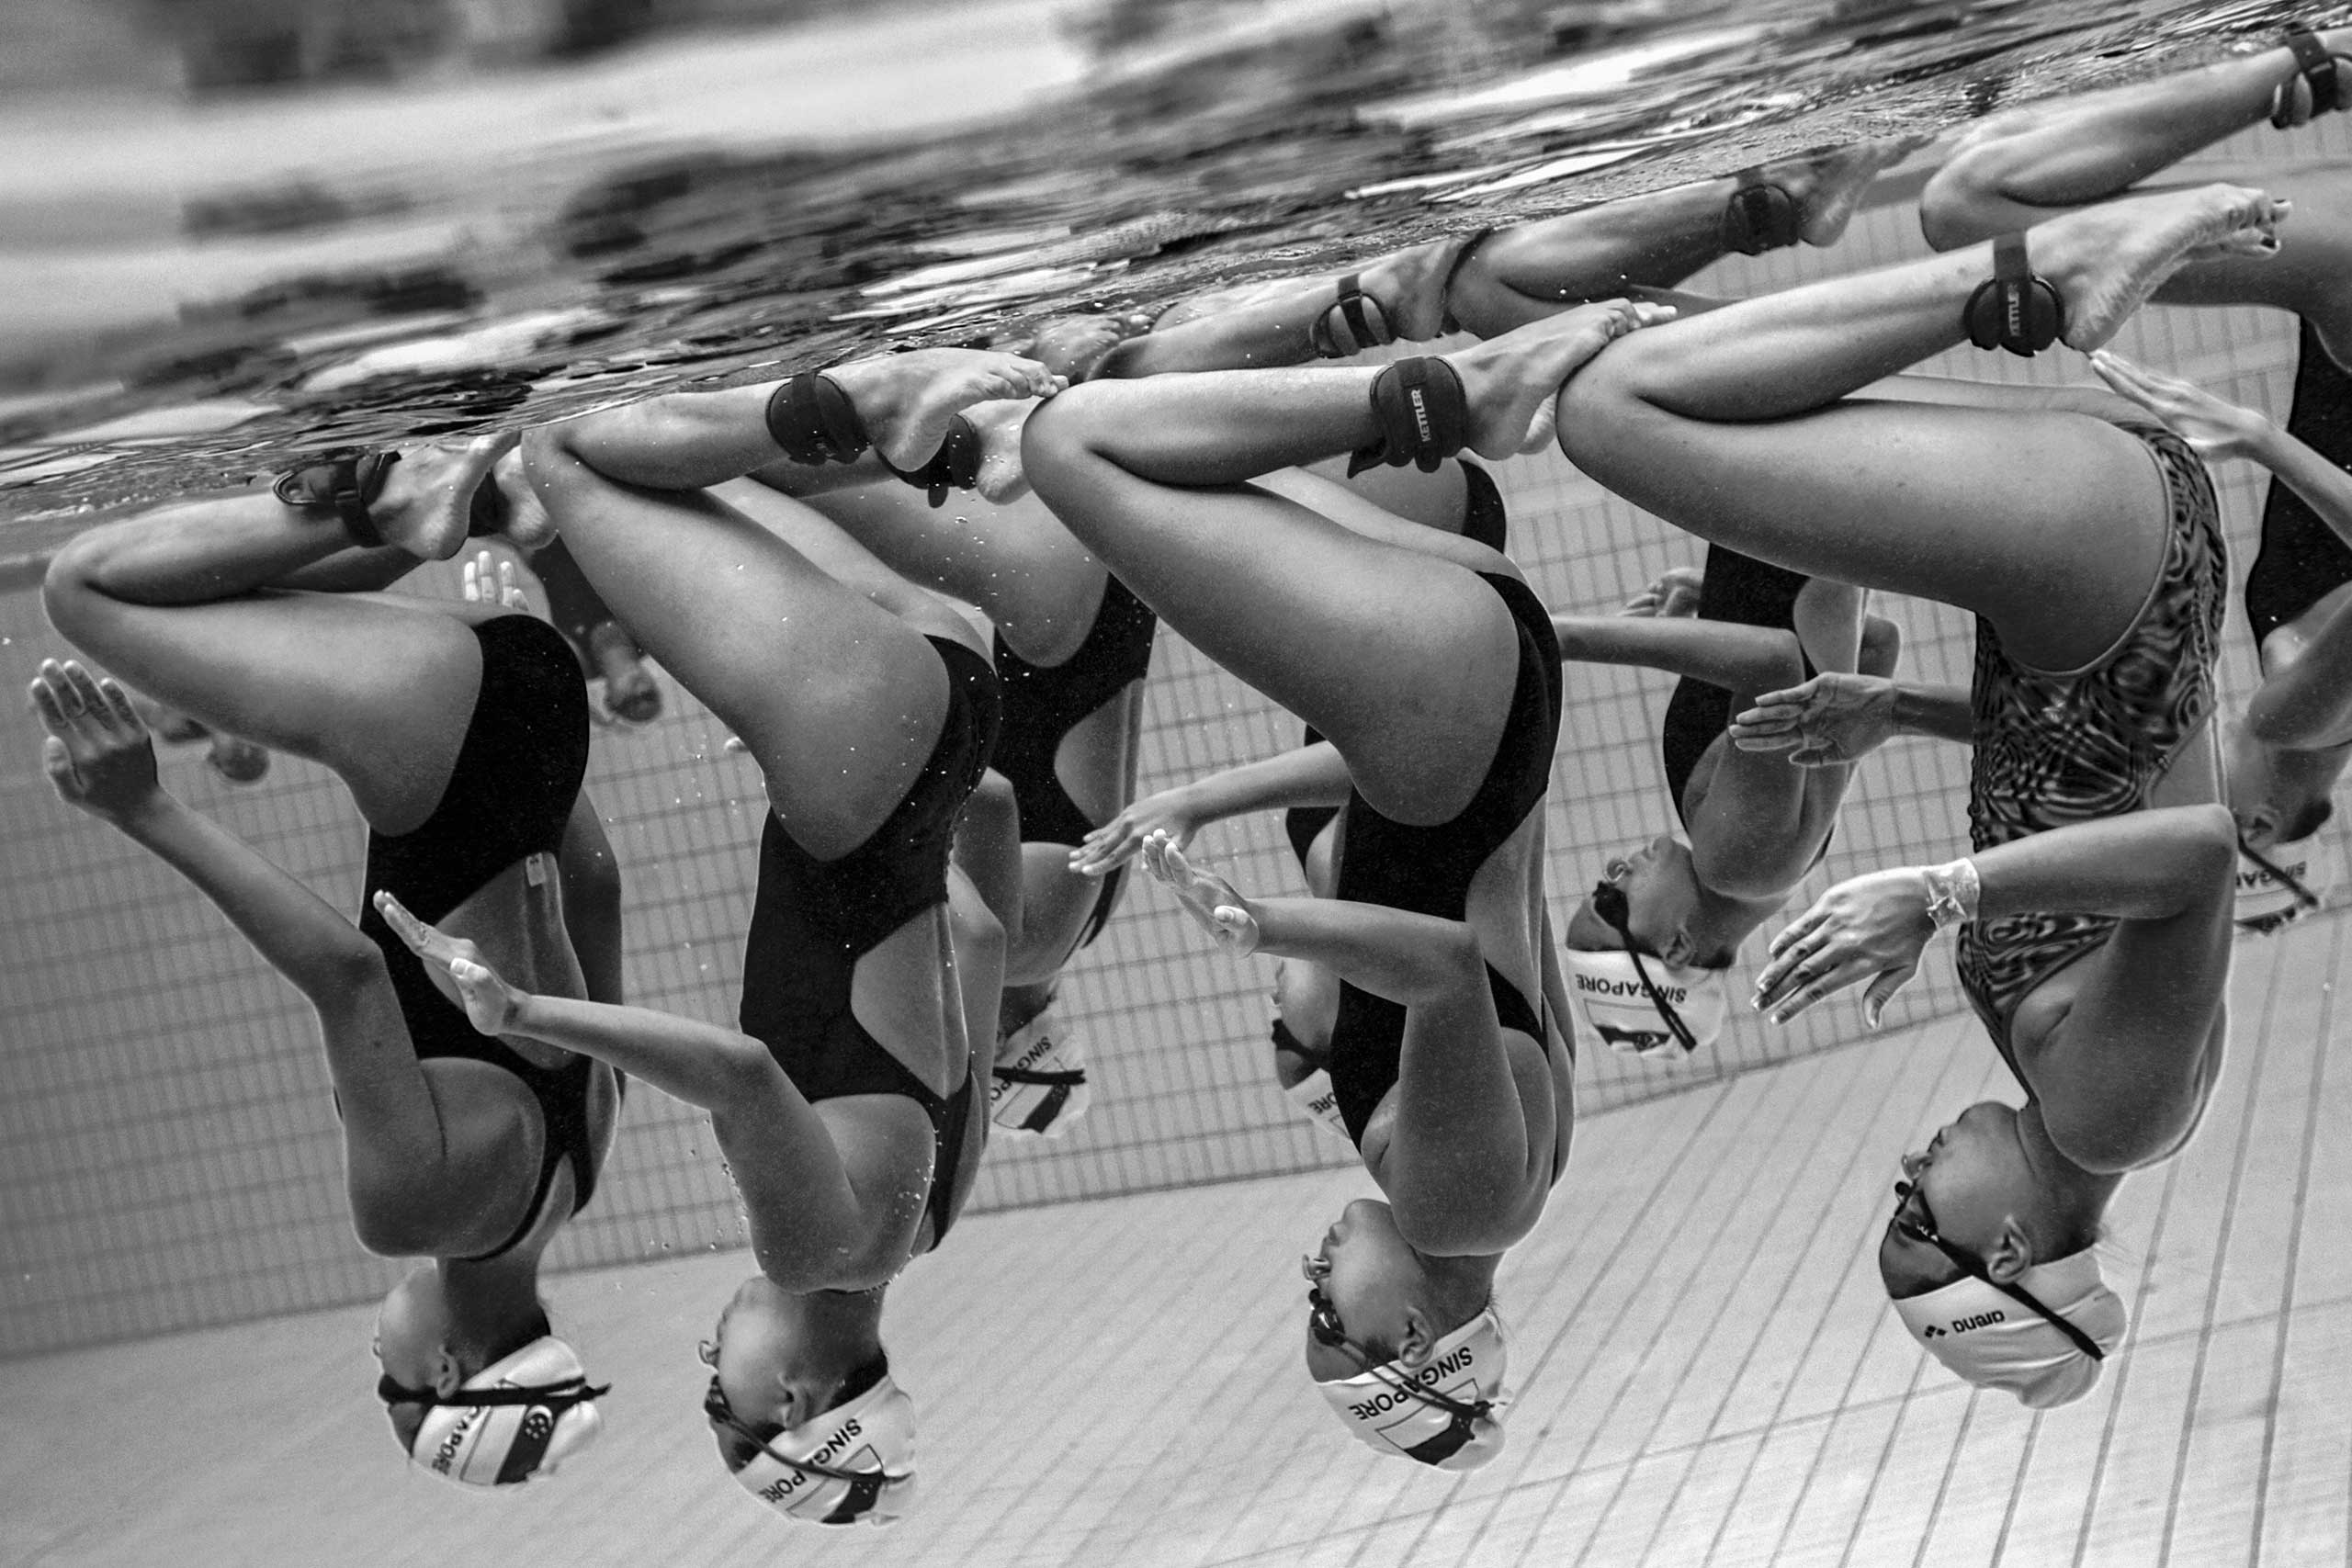 Nominated in the Sport category. Jonathan Yeap Chin Tiong's work on synchronized swimming in Singapore.